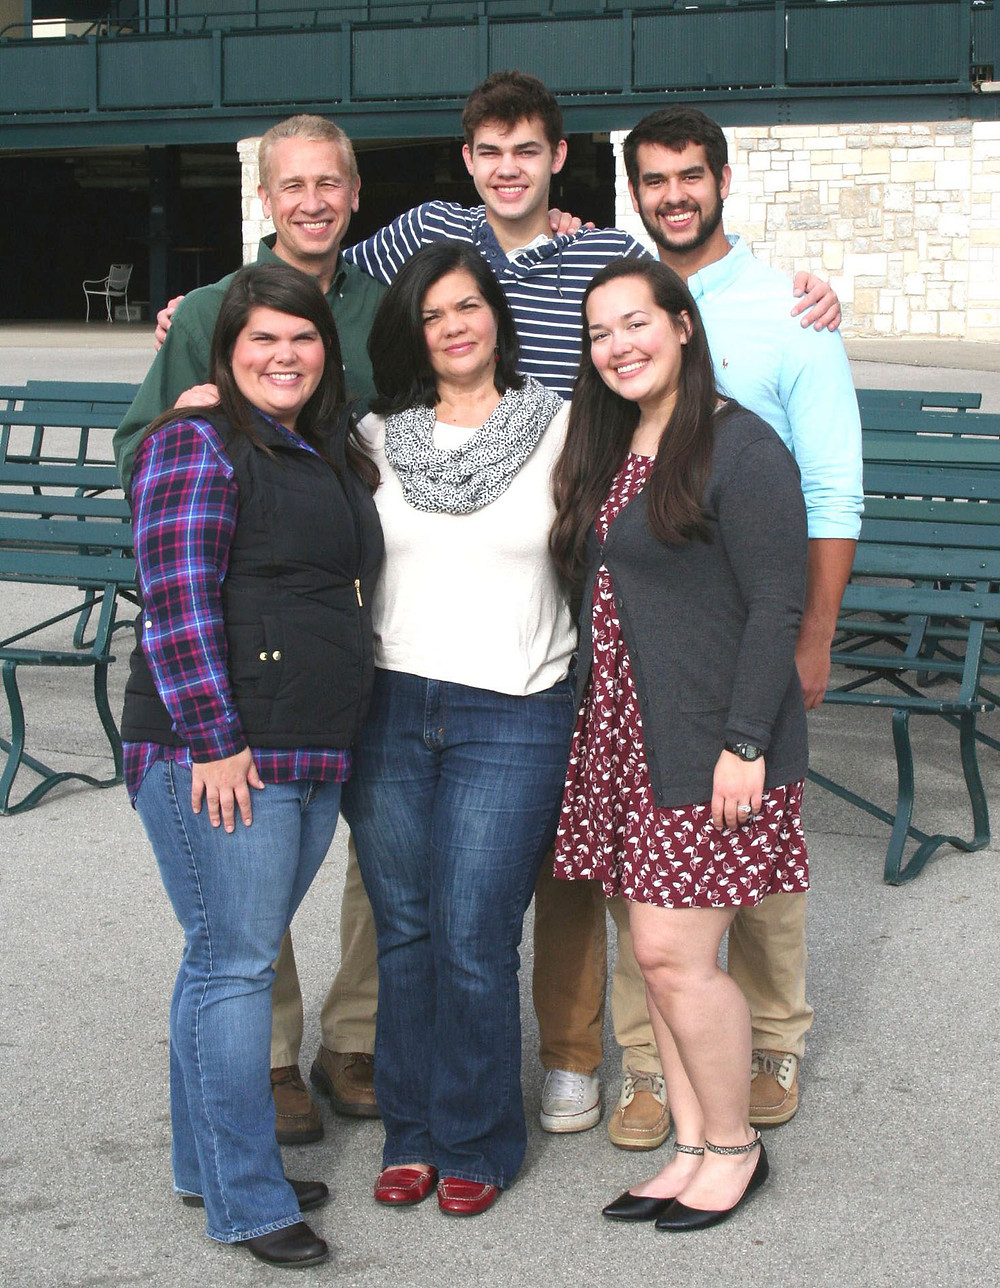 DAVID COUCH, top left, was one of 25 people around the country presented with a 'Dreamer, Doer and Driver' award in Government Technology magazine's April edition. From top left, at Keeneland last Thanksgiving, Couch, sons Logan and Matthew. From bottom left, daughter Alissa, wife Tina, and daughter Amanda. (Photo submitted)